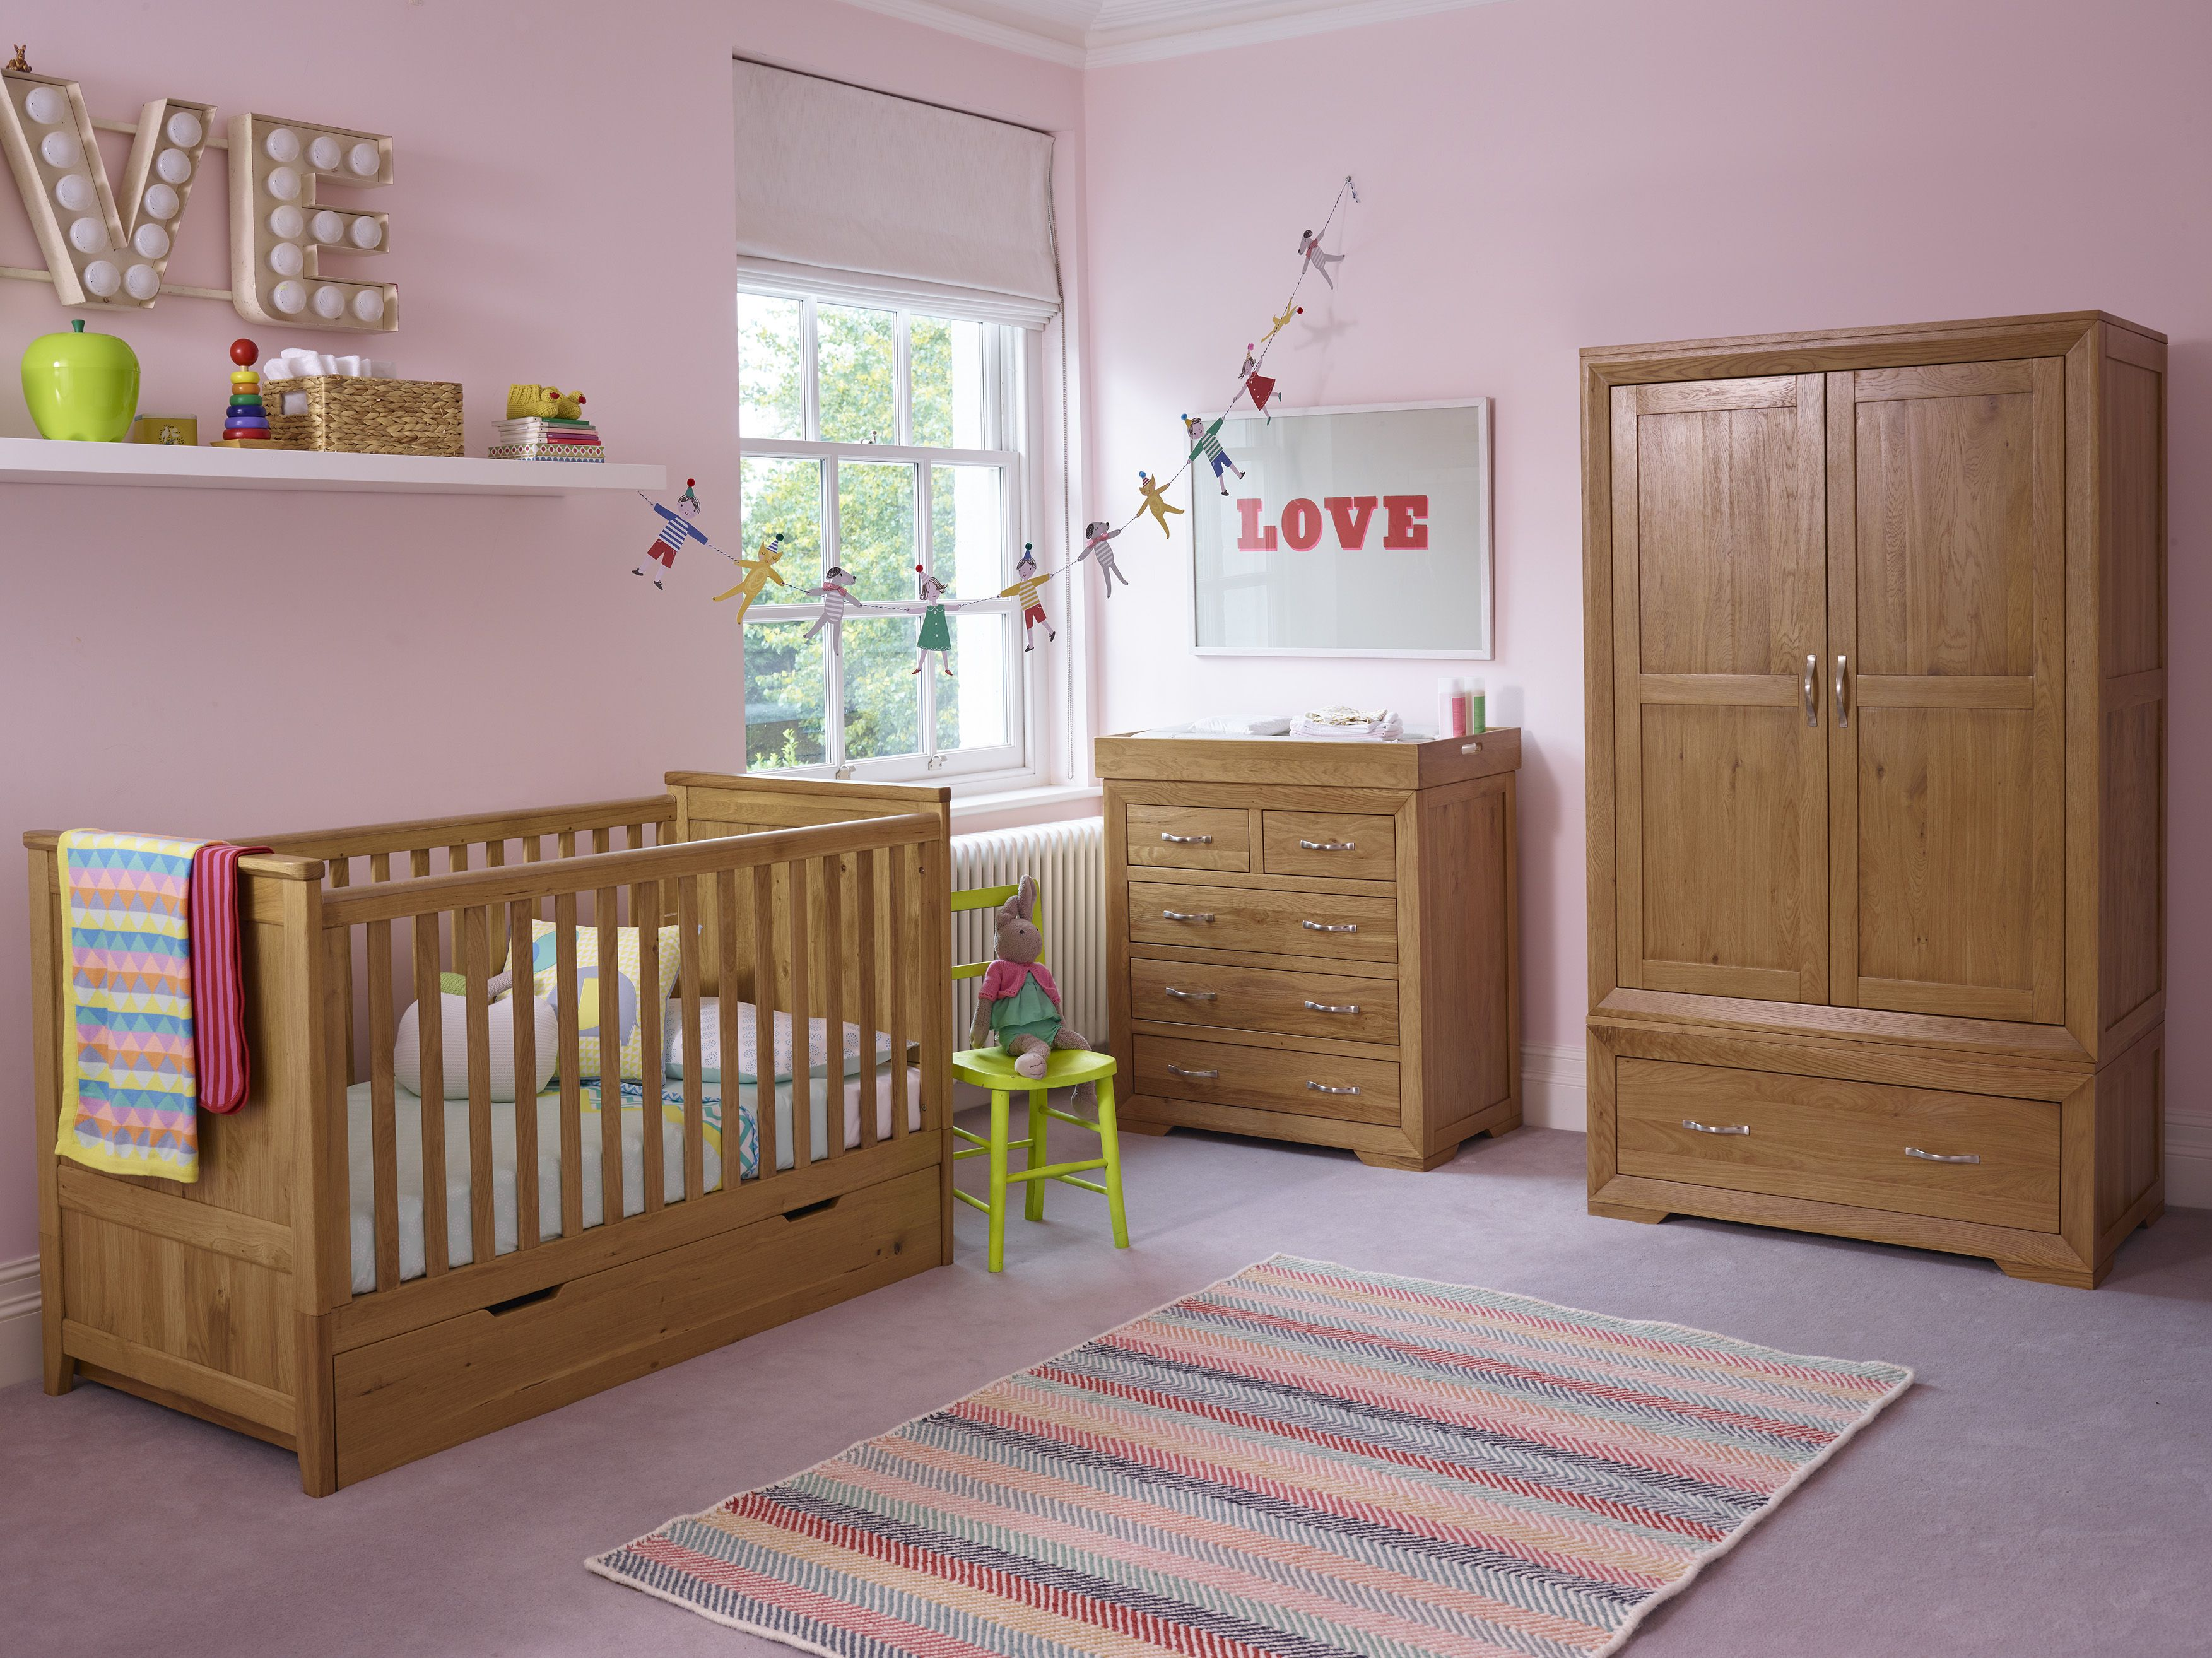 Transform Your Baby S Nursery To A Child S Bedroom With Our Versatile Transitioning Furniture From Oak Fur Nursery Furniture Oak Furniture Baby Room Furniture